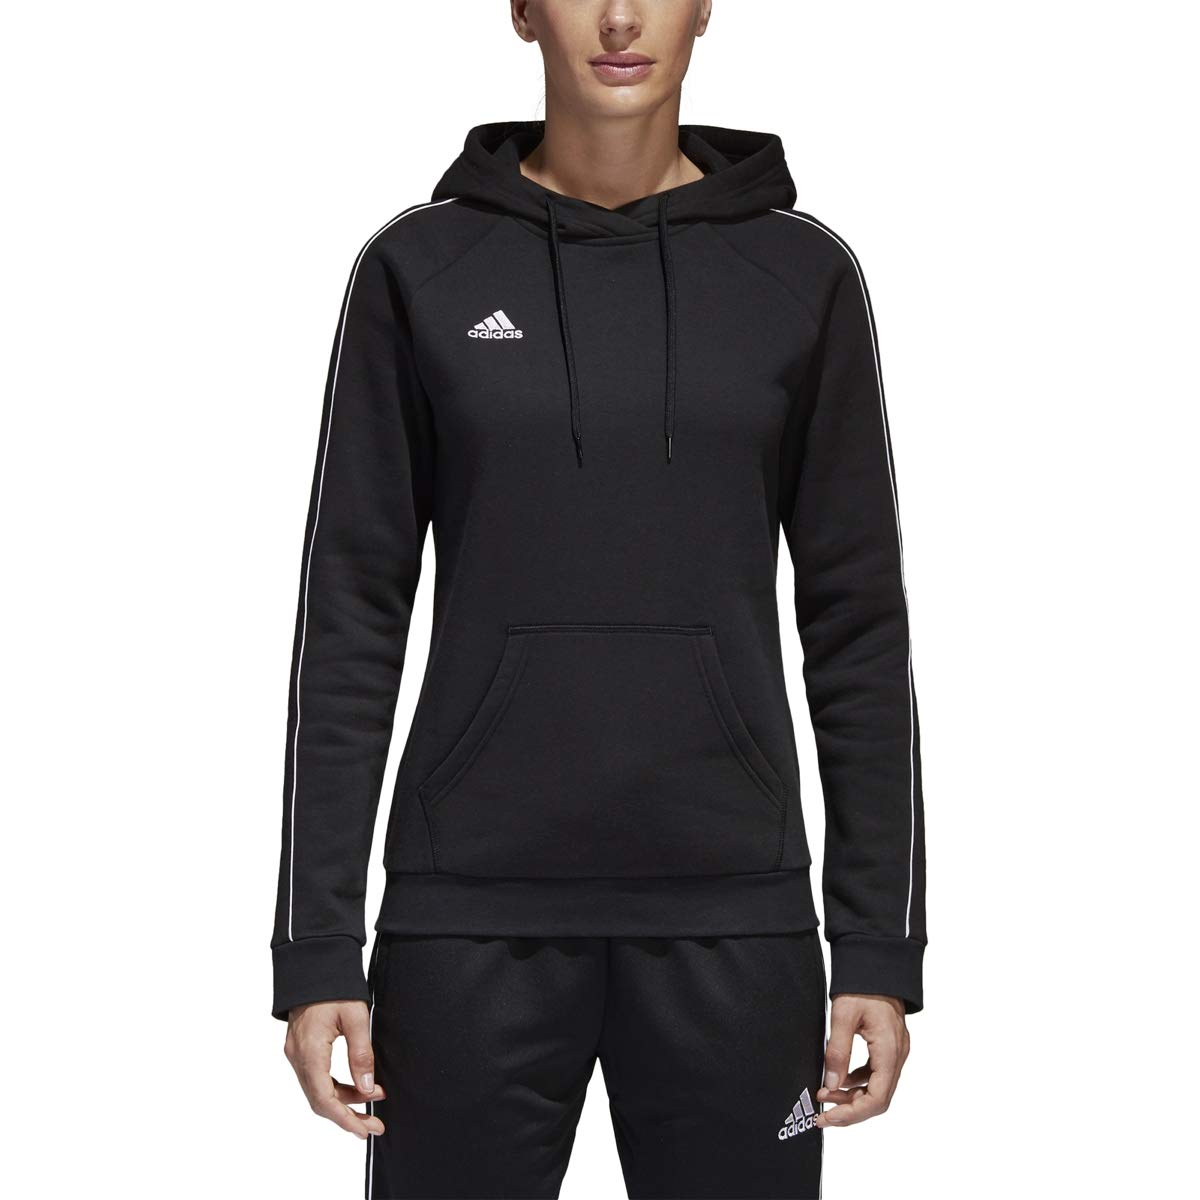 adidas Women's Core 18 Soccer Hoodie by adidas